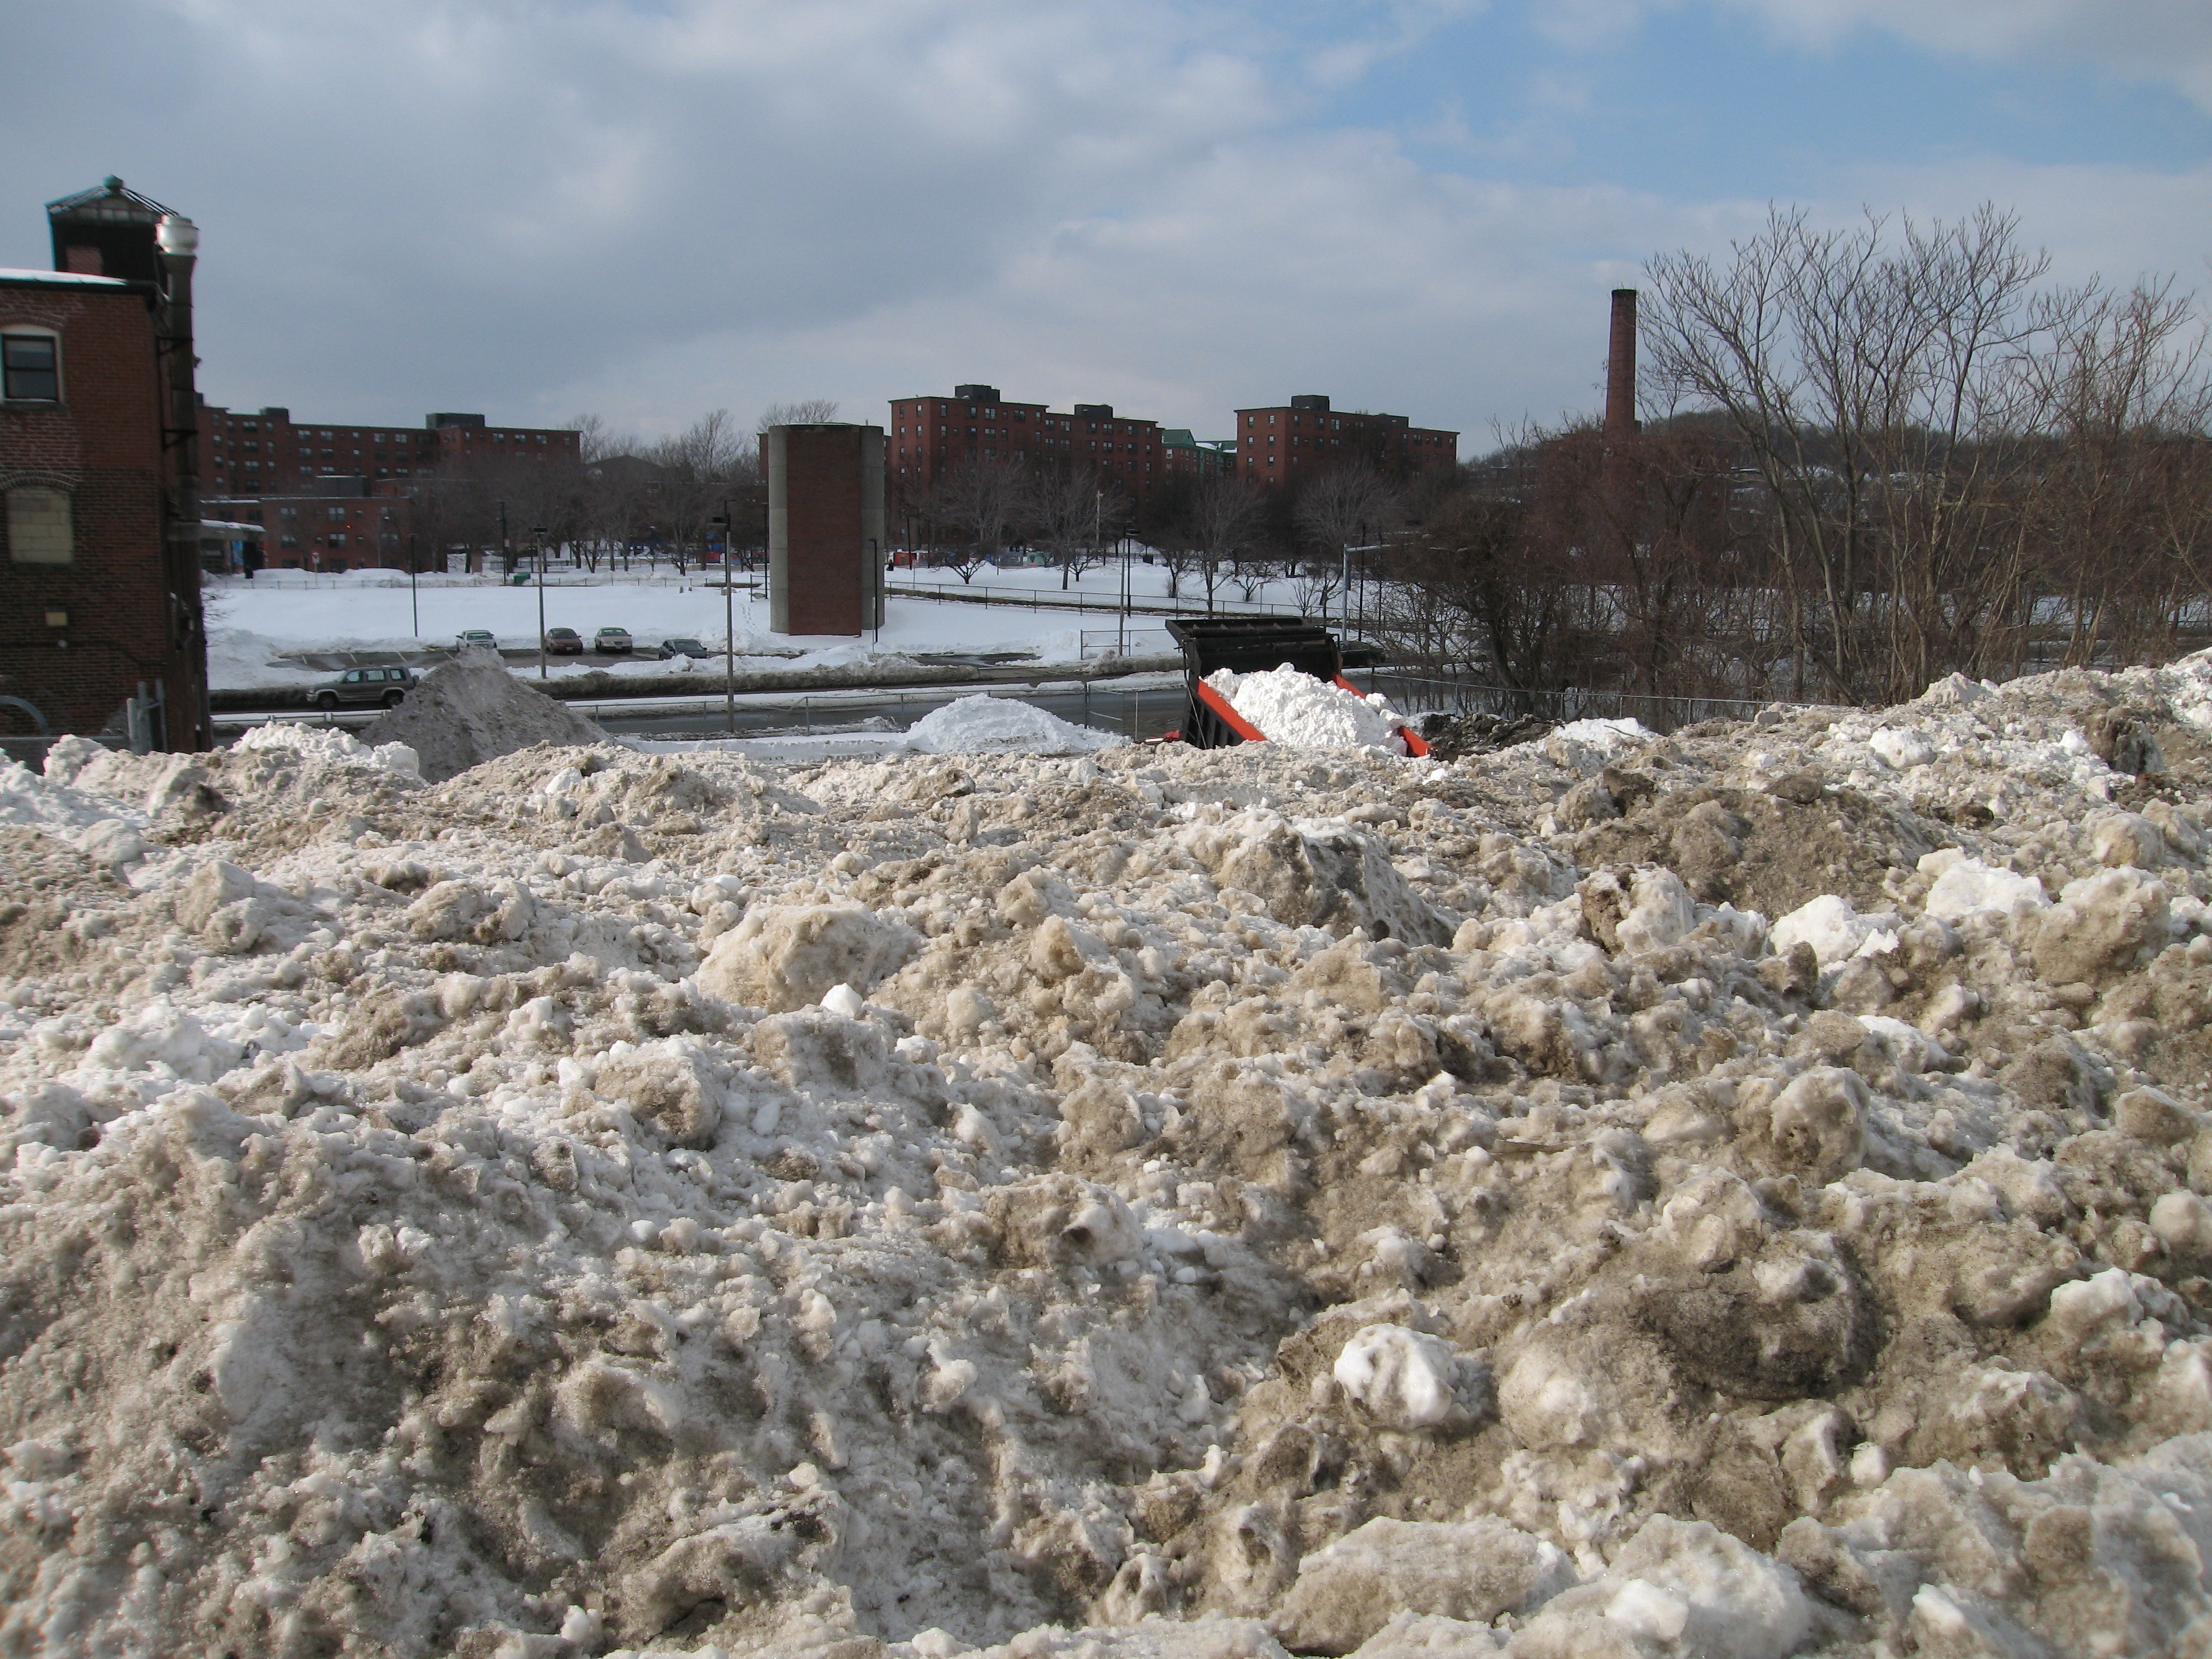 Photo: This is where they take some of the snow from Boston. A dumptruck is dumping a fresh load in this photo. See all(?) of the dumping locations here: http://maps.google.com/maps/ms?ie=UTF8&hl=en&msa=0&msid=214148468717374278360.00049b40687948d3d9449&z=12